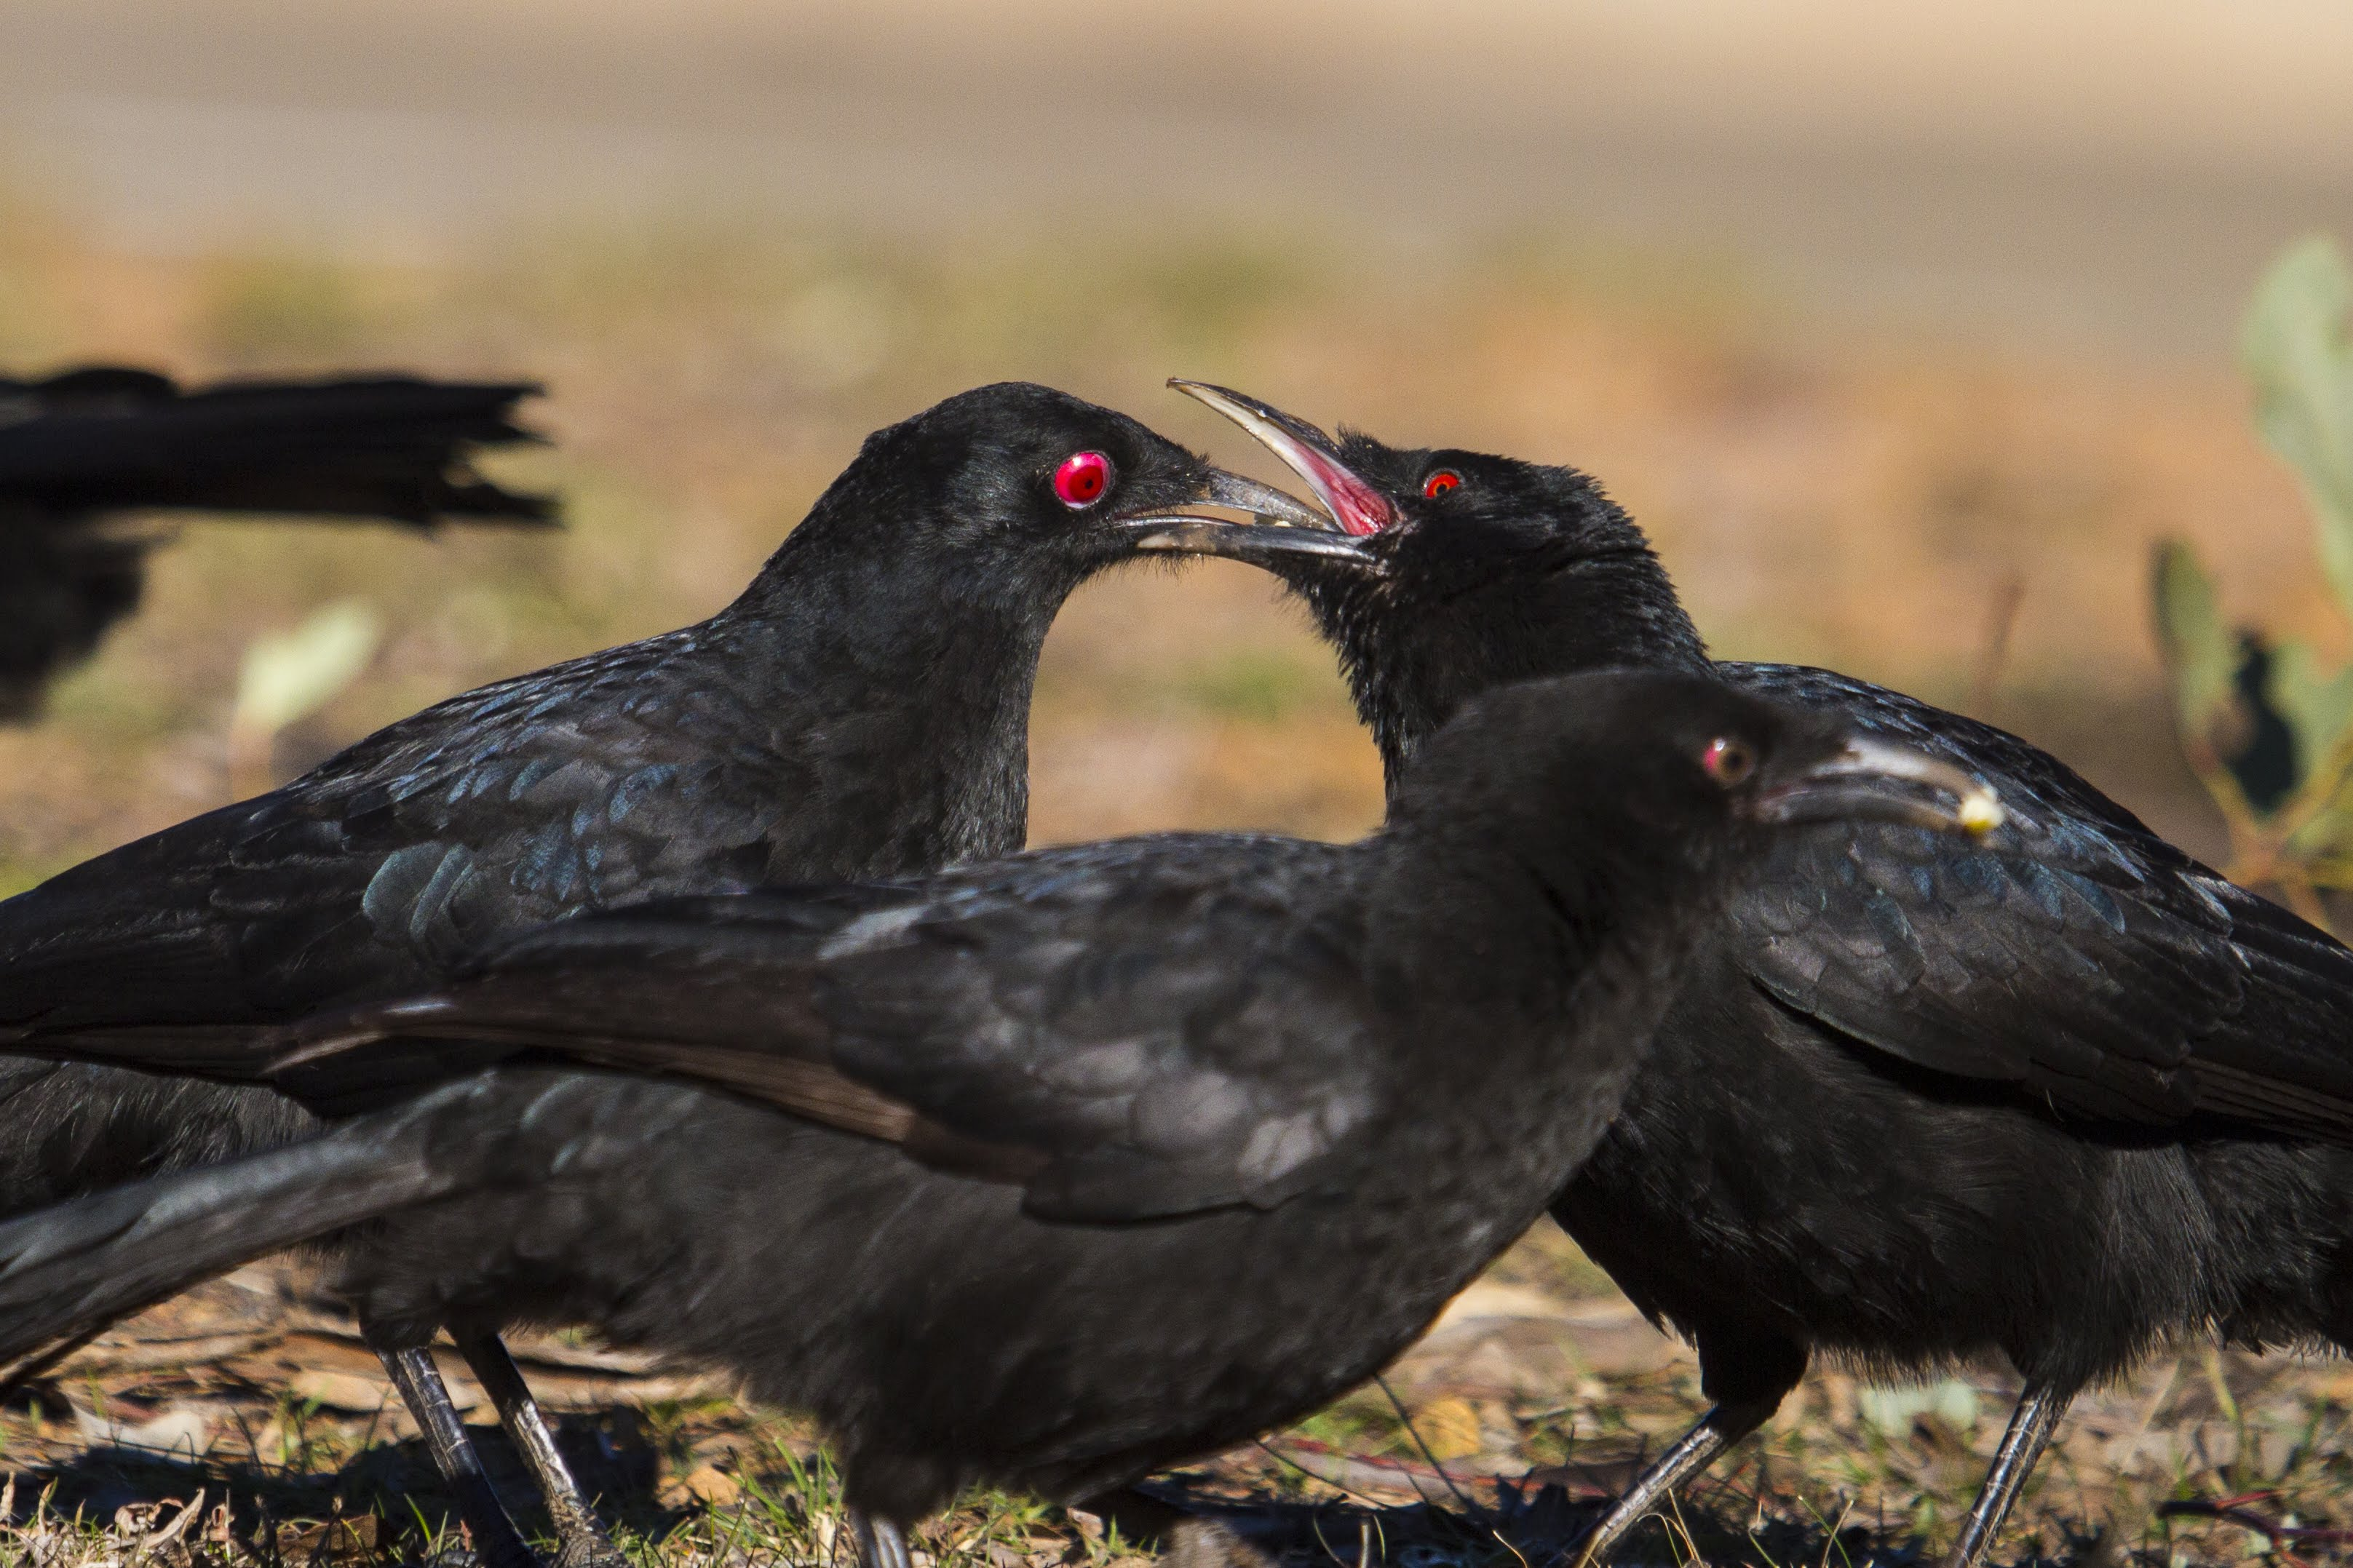 A photo of choughs being highly social, taken by Dr Connie Leon.